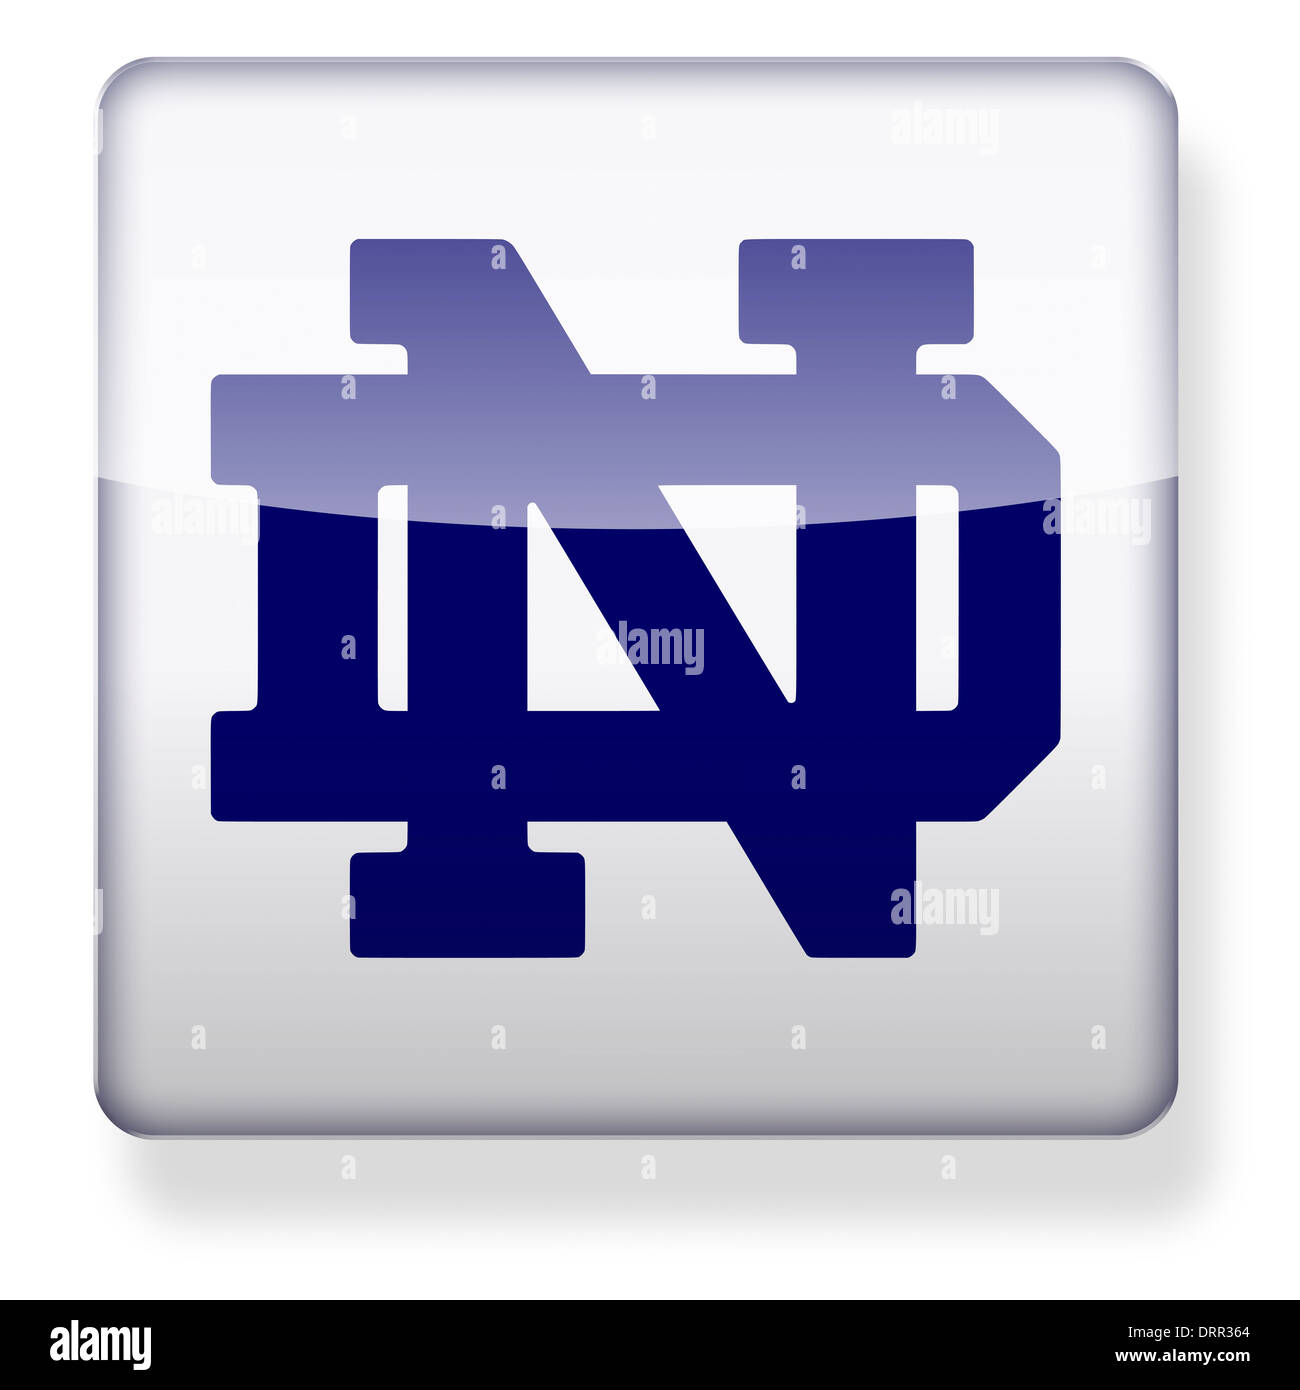 24f8e5028d6 Notre Dame Fighting Irish US college football logo as an app icon. Clipping  path included.